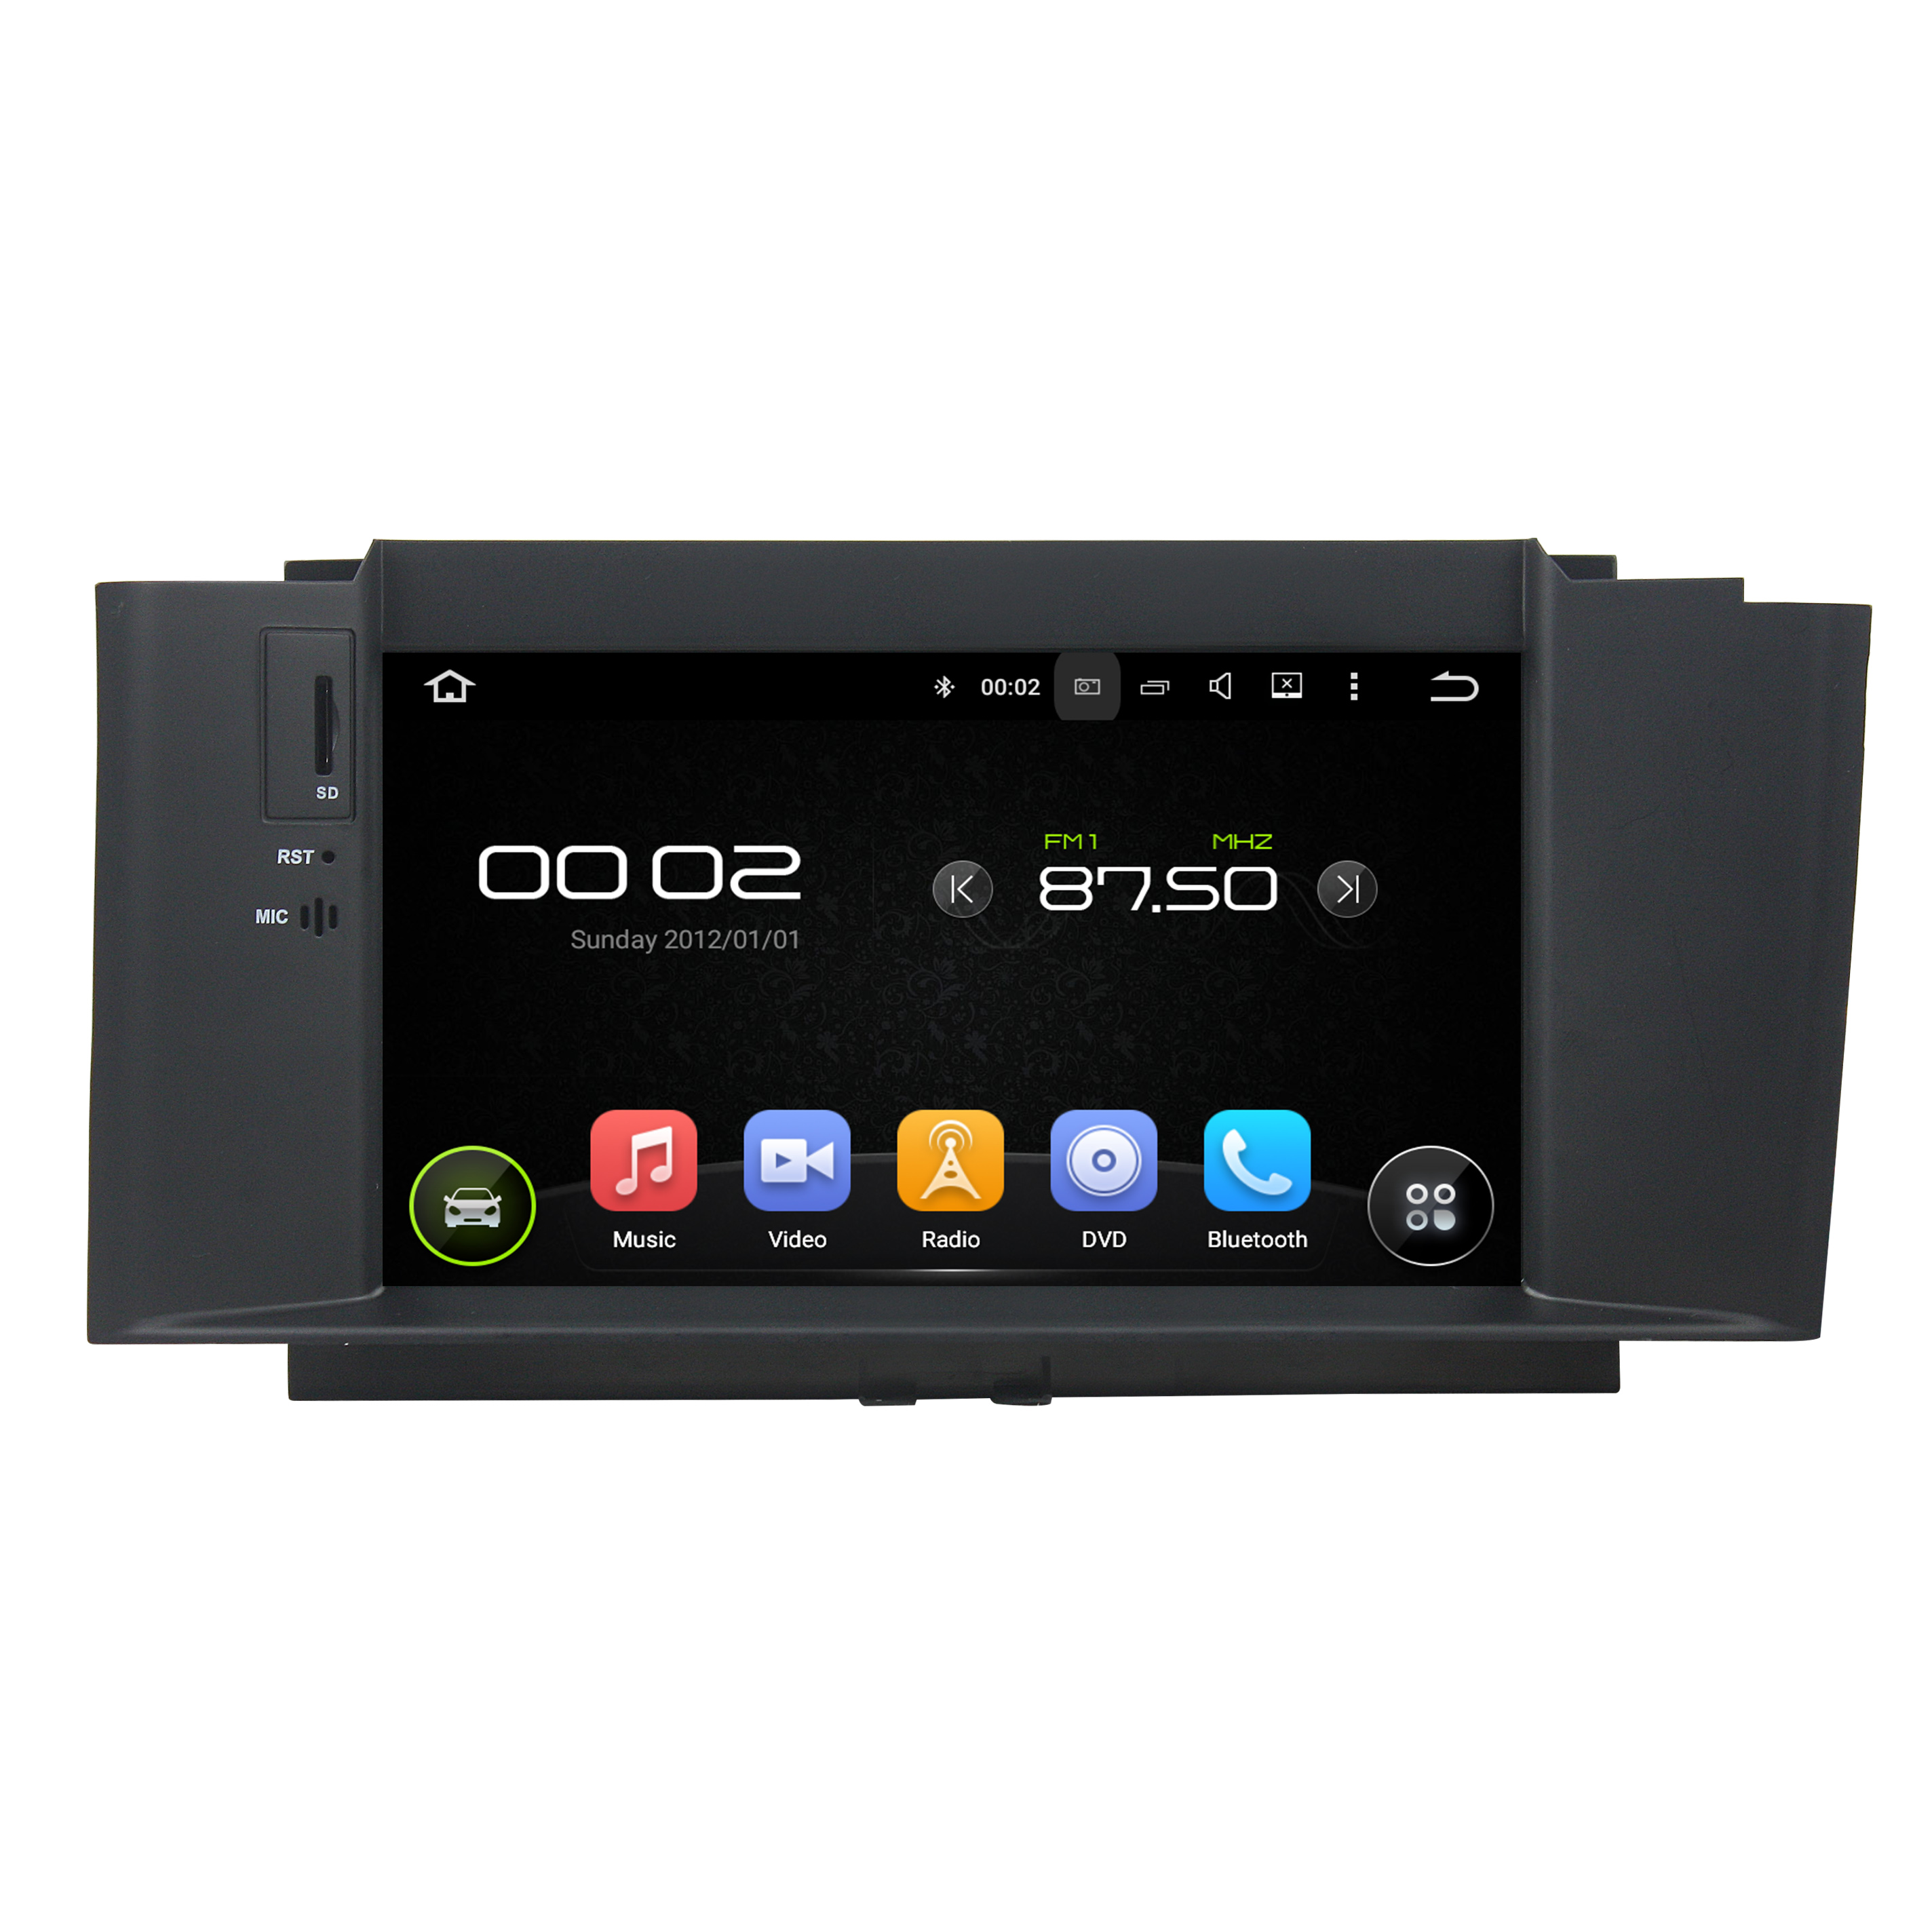 C4 2012-2014 canbus included dvd player